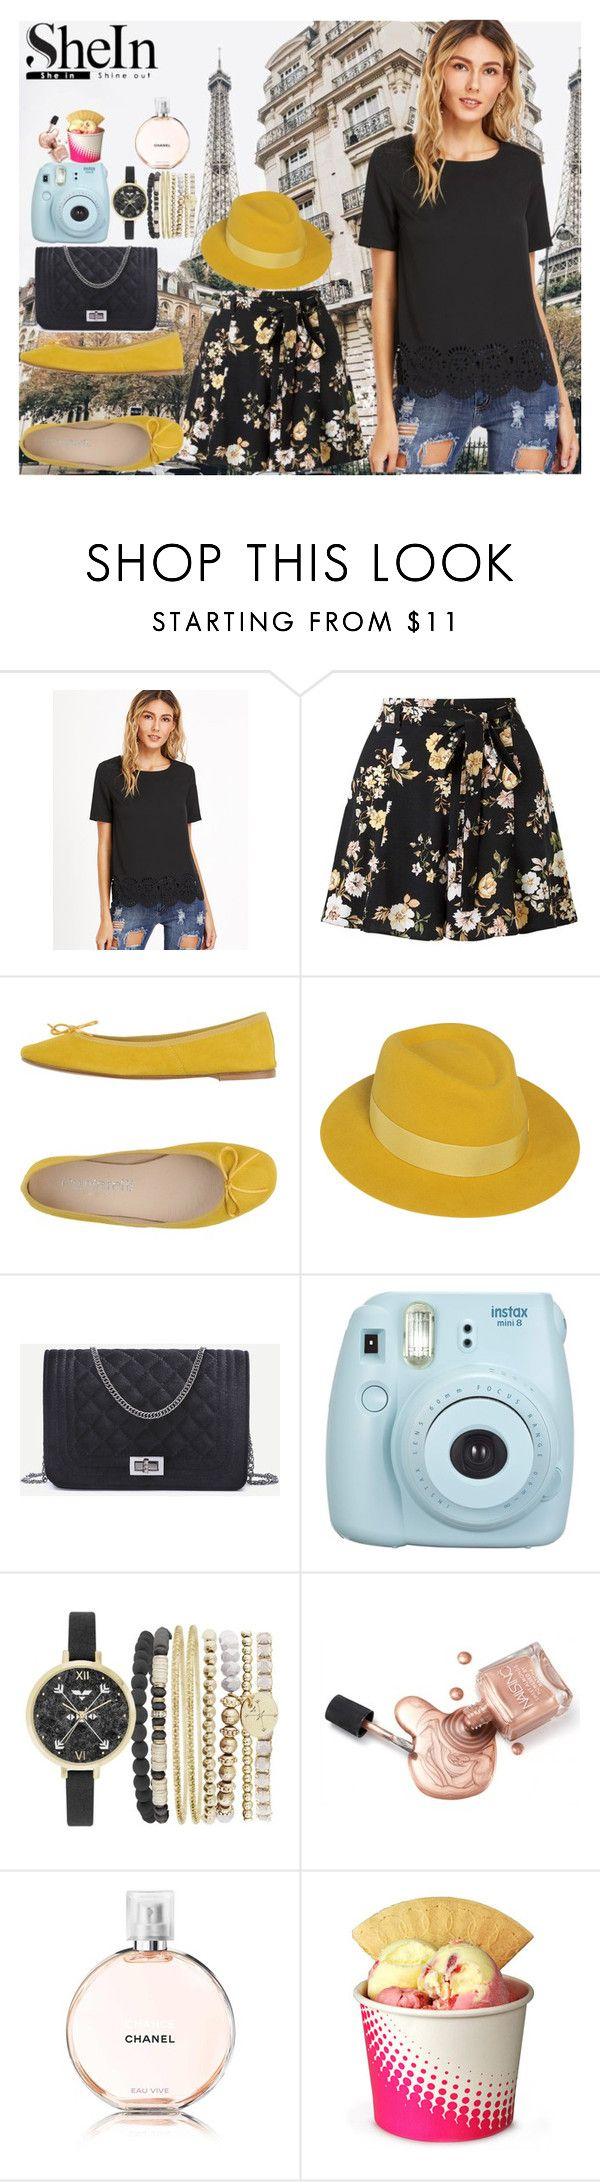 """Untitled #375"" by kat-van-d ❤ liked on Polyvore featuring Miss Selfridge, Cantarelli, Maison Michel, Fujifilm, Jessica Carlyle, Chanel and shein"